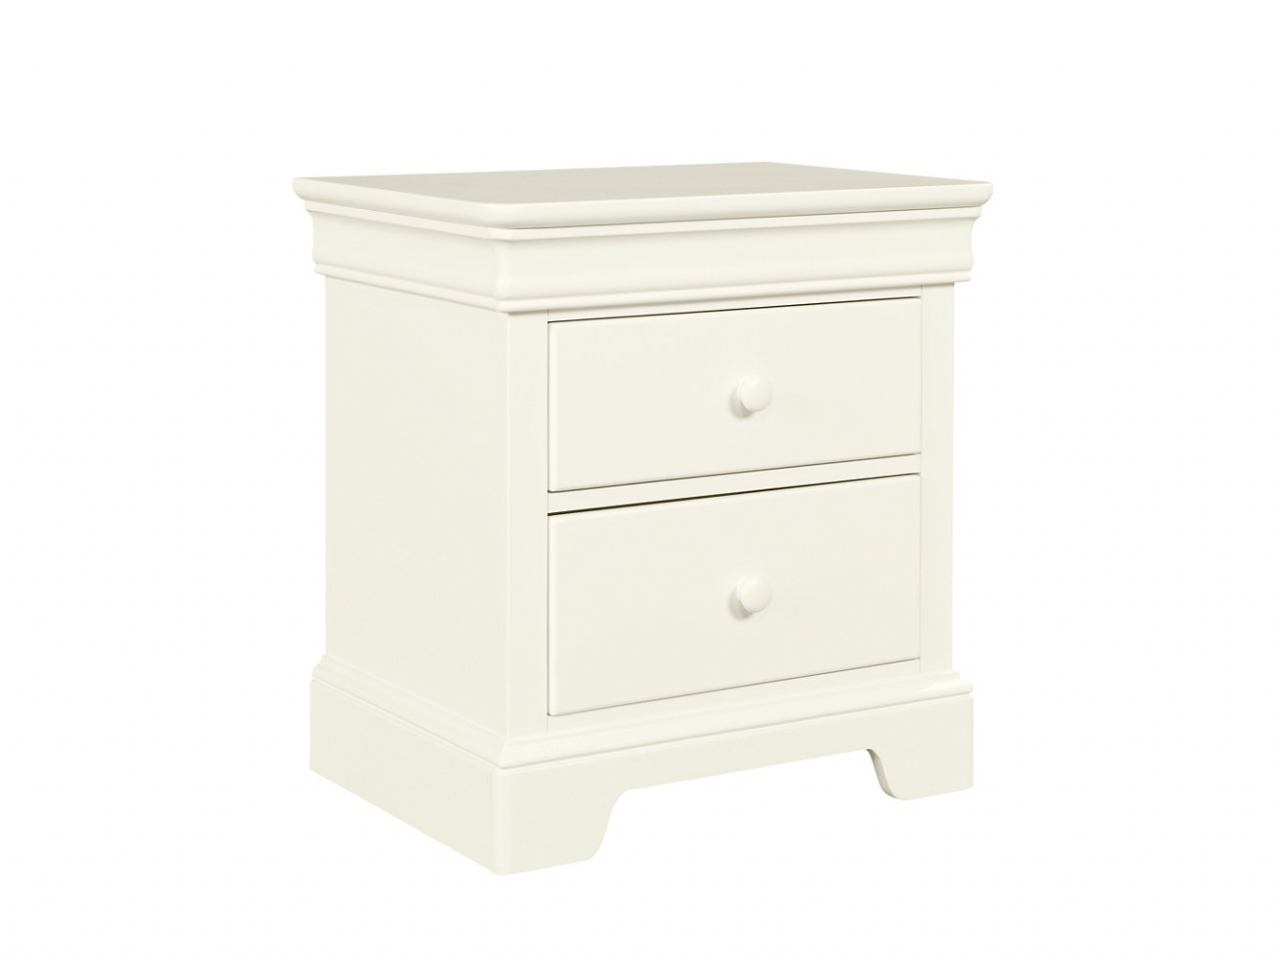 Stone & Leigh Teaberry Lane Nightstand in Stardust 575-23-82